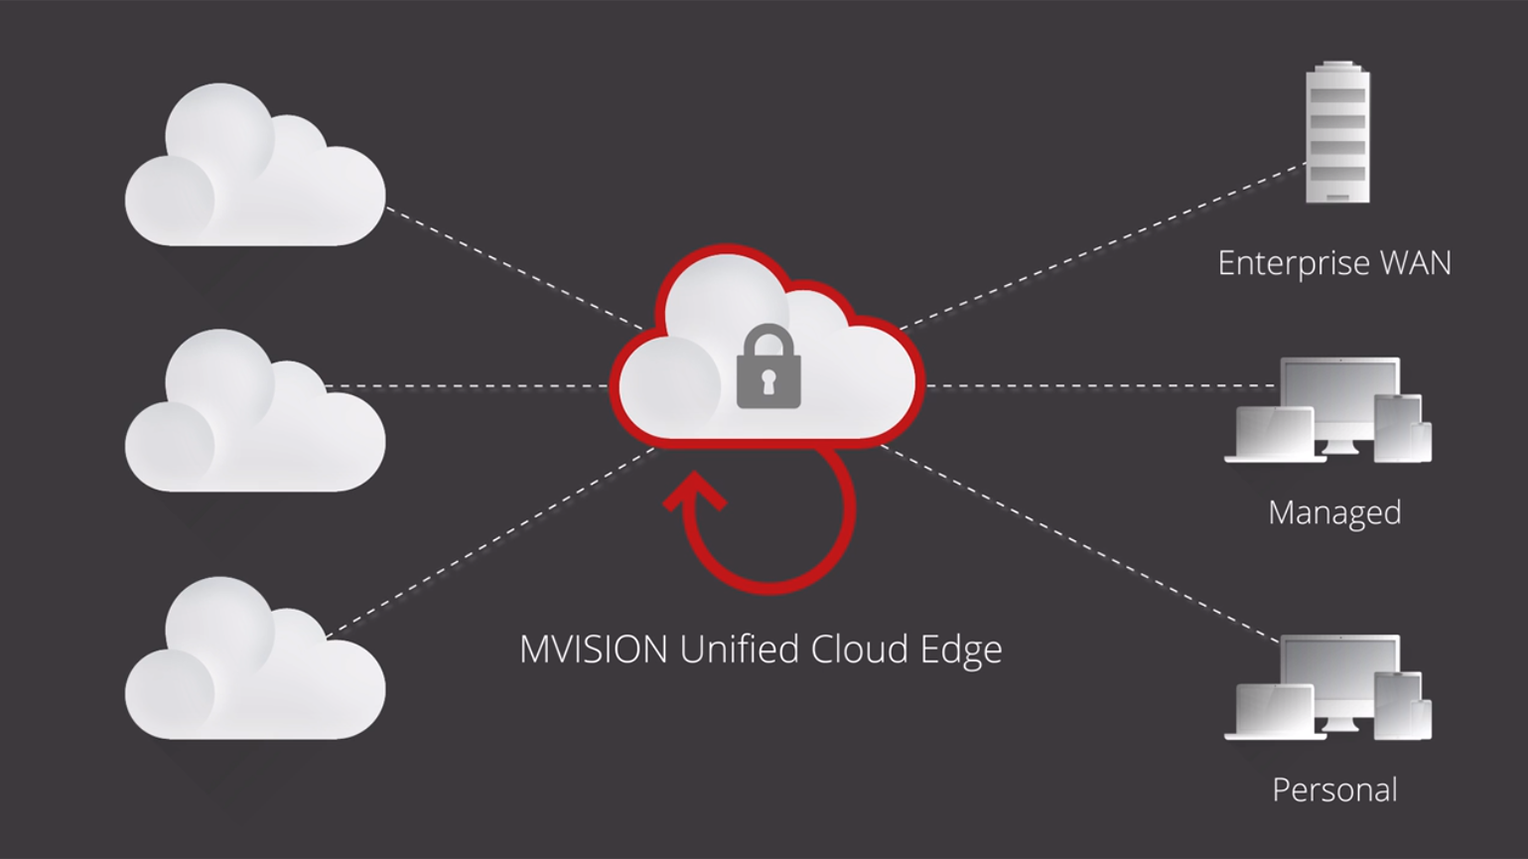 MVISION Unified Cloud Edge